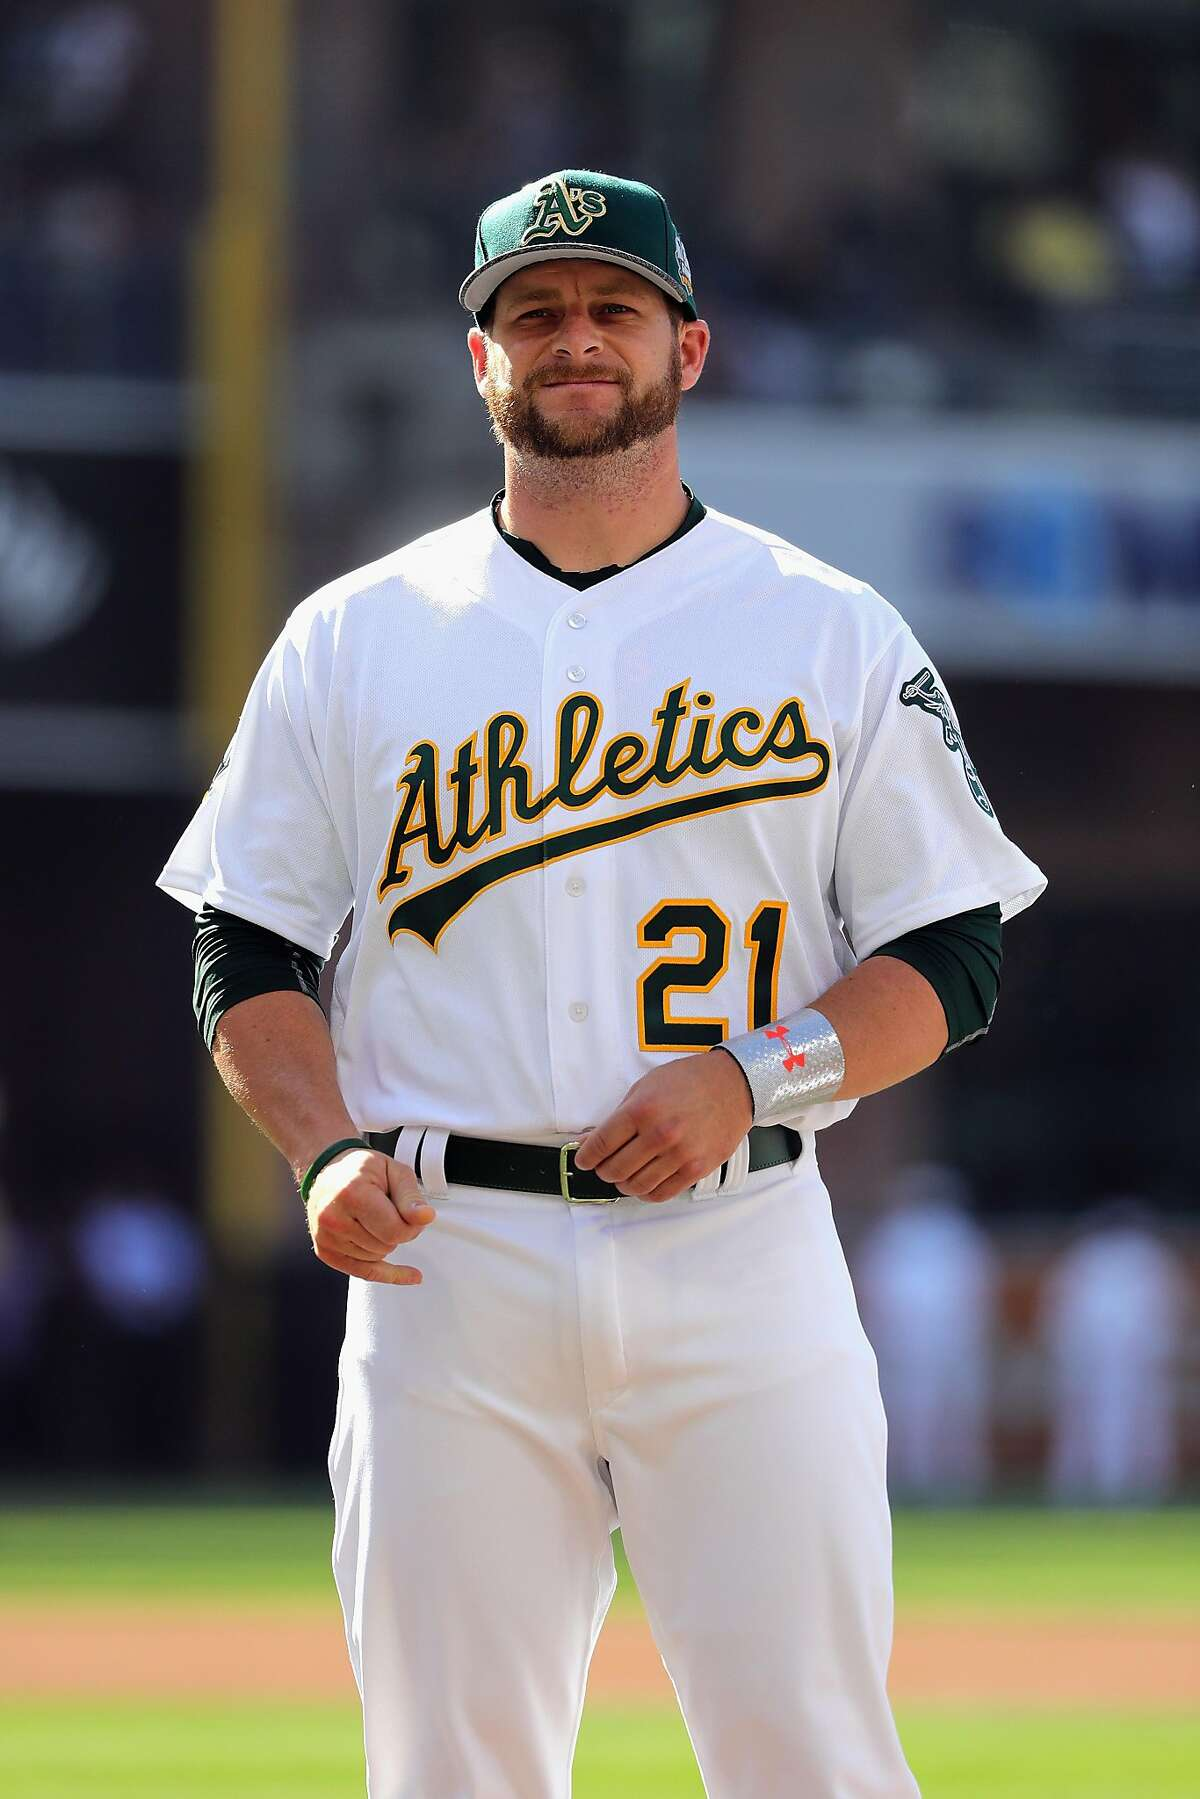 SAN DIEGO, CA - JULY 12: Stephen Vogt #21 of the Oakland Athletics looks on prior to the 87th Annual MLB All-Star Game at PETCO Park on July 12, 2016 in San Diego, California. (Photo by Harry How/Getty Images)